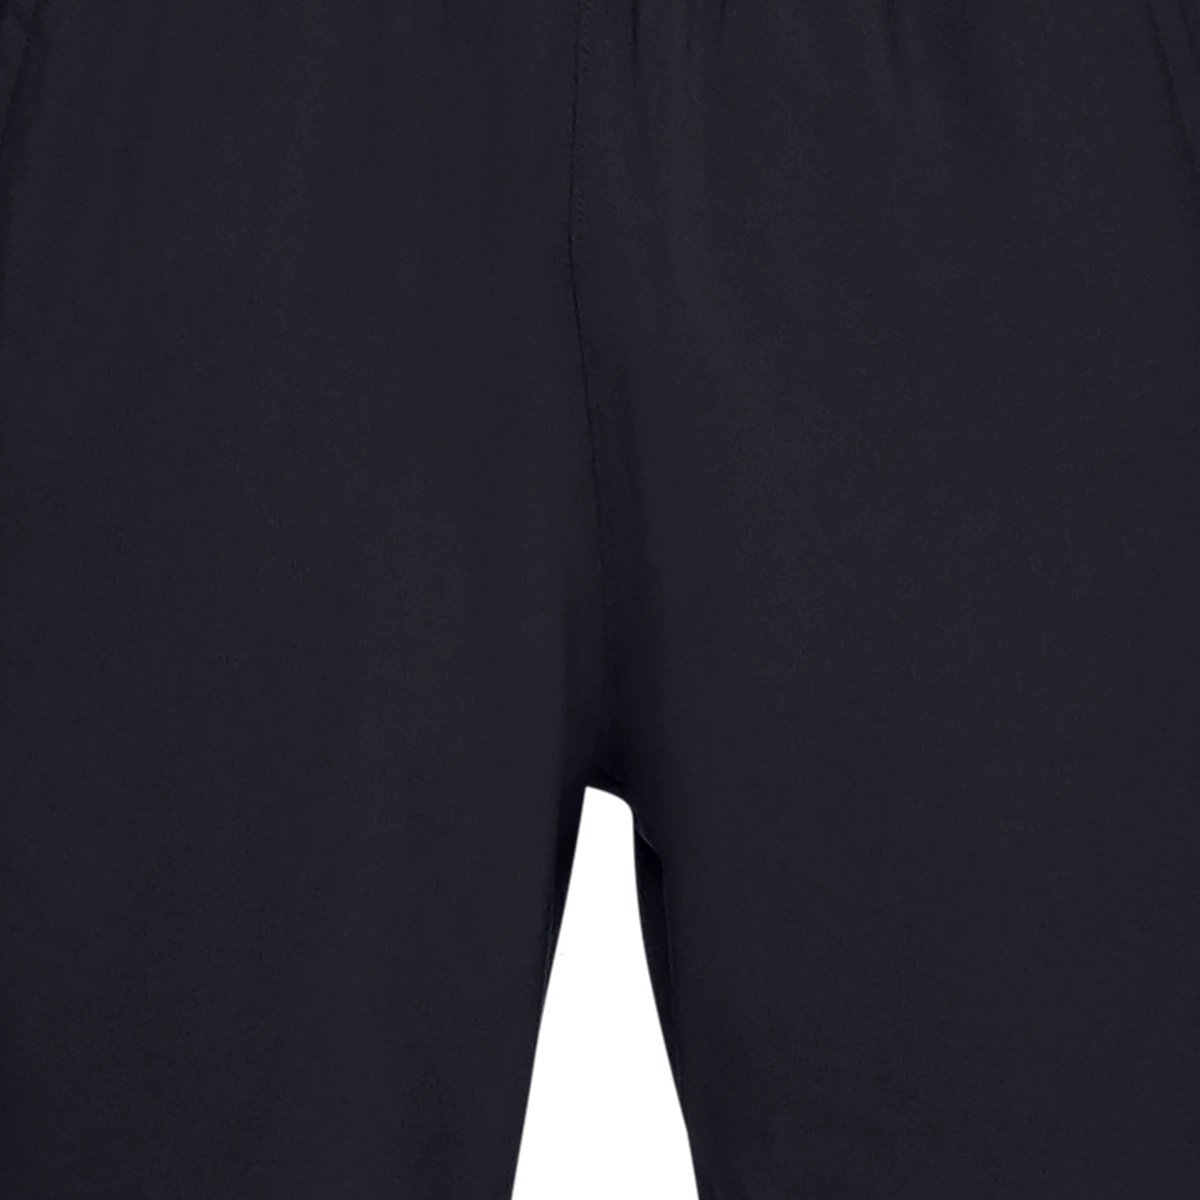 Men's Under Armour Launch SW 9in Shorts - Color: Black/Black/Reflective - Size: S, Black/Reflective, large, image 4